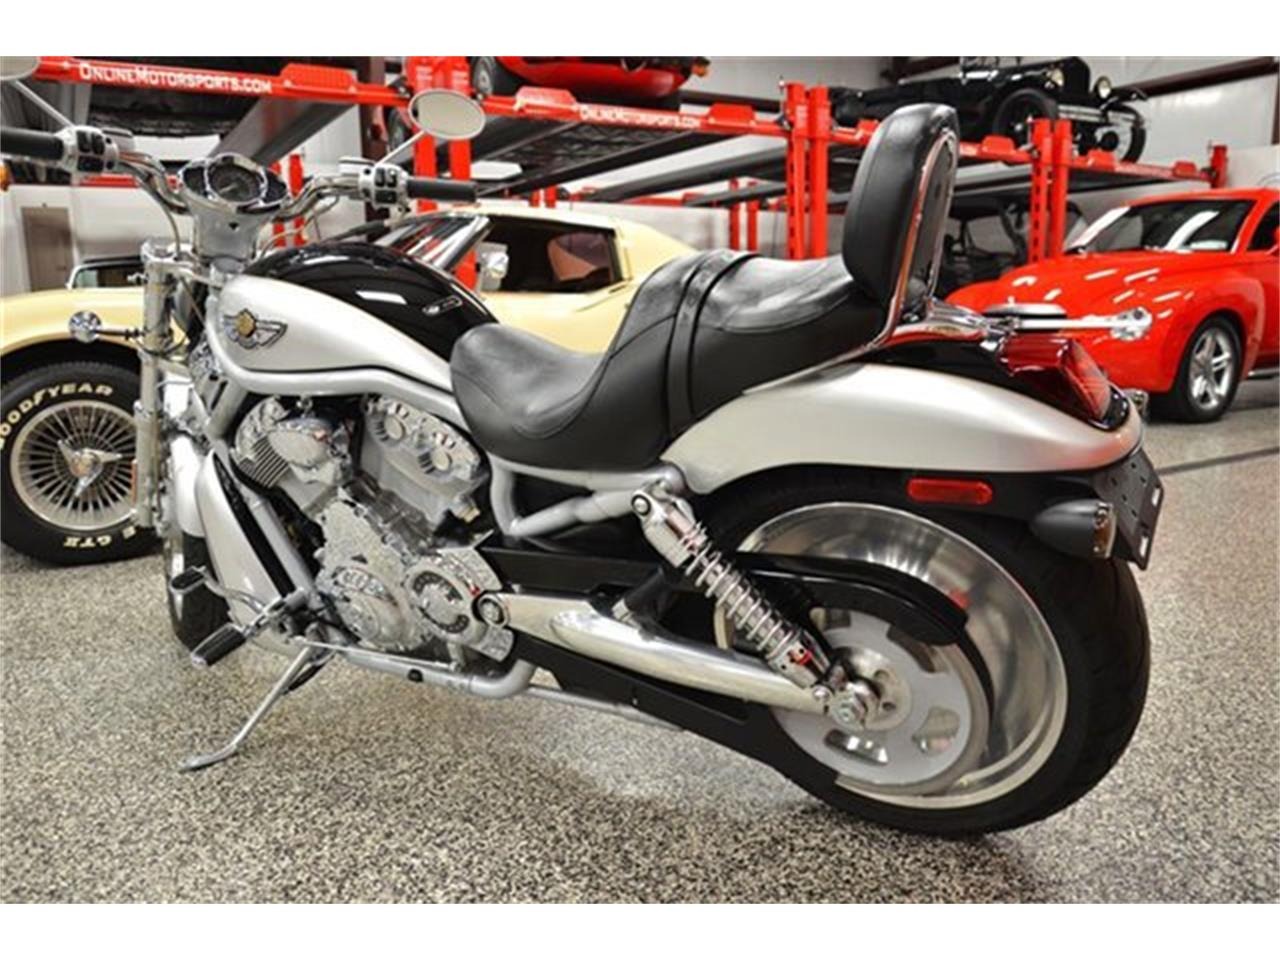 2003 Harley-Davidson VRSC for sale in Plainfield, IL – photo 37